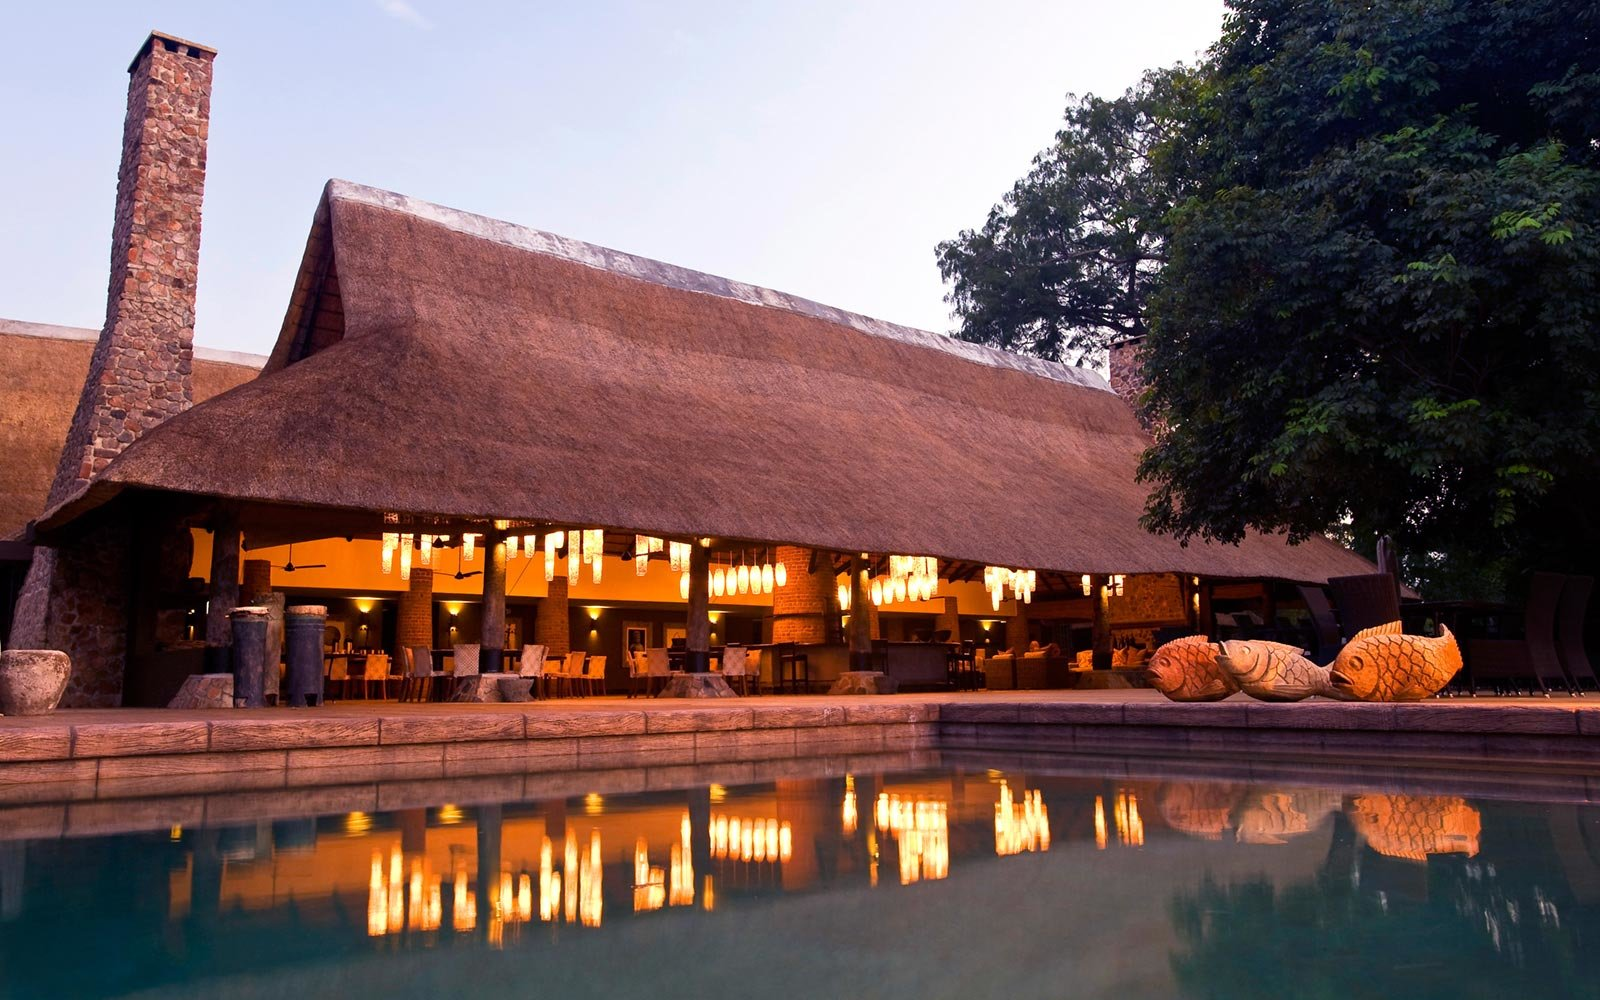 3. Mfuwe Lodge, South Luangwa National Park, Zambia